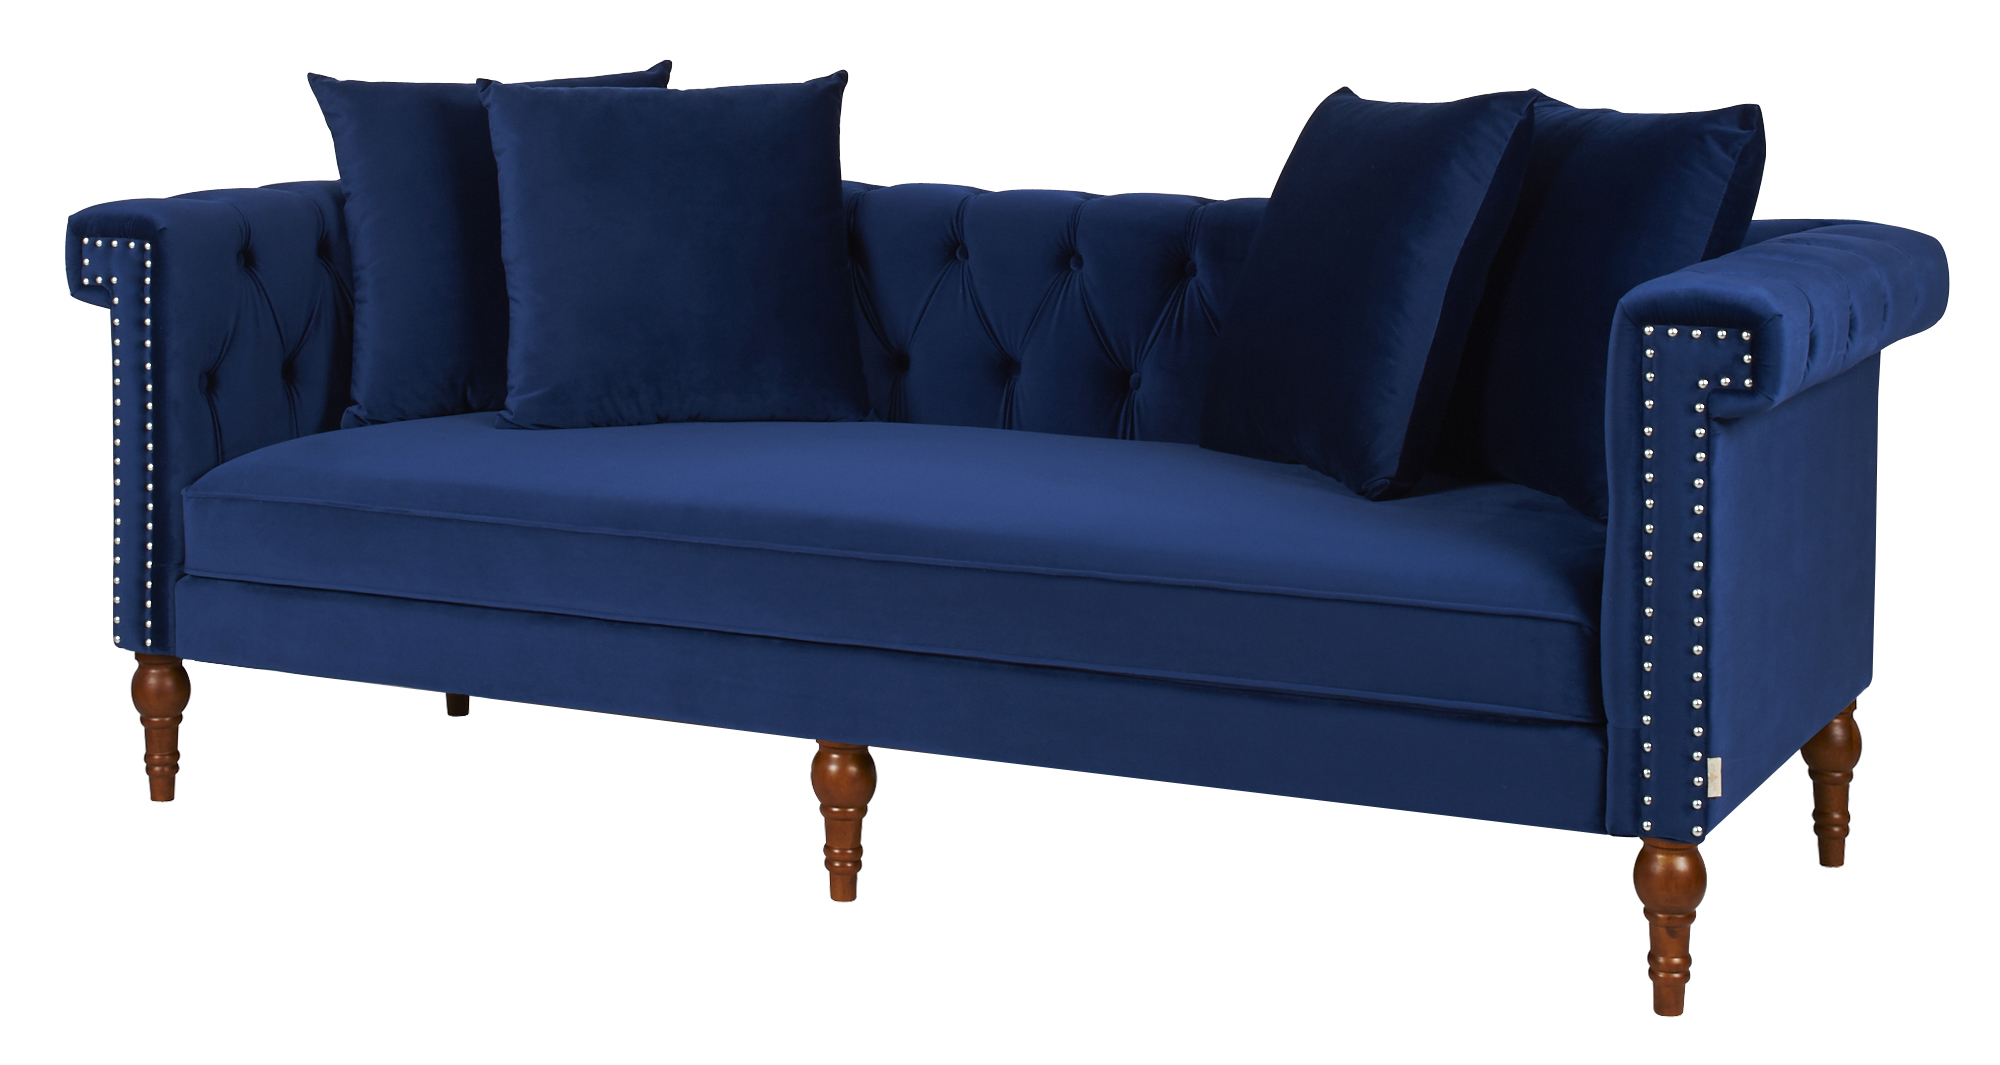 Chesterfield Sofa Navy Fabric Wooden Chesterfield Sofa - Navy Blue - Comfychest157